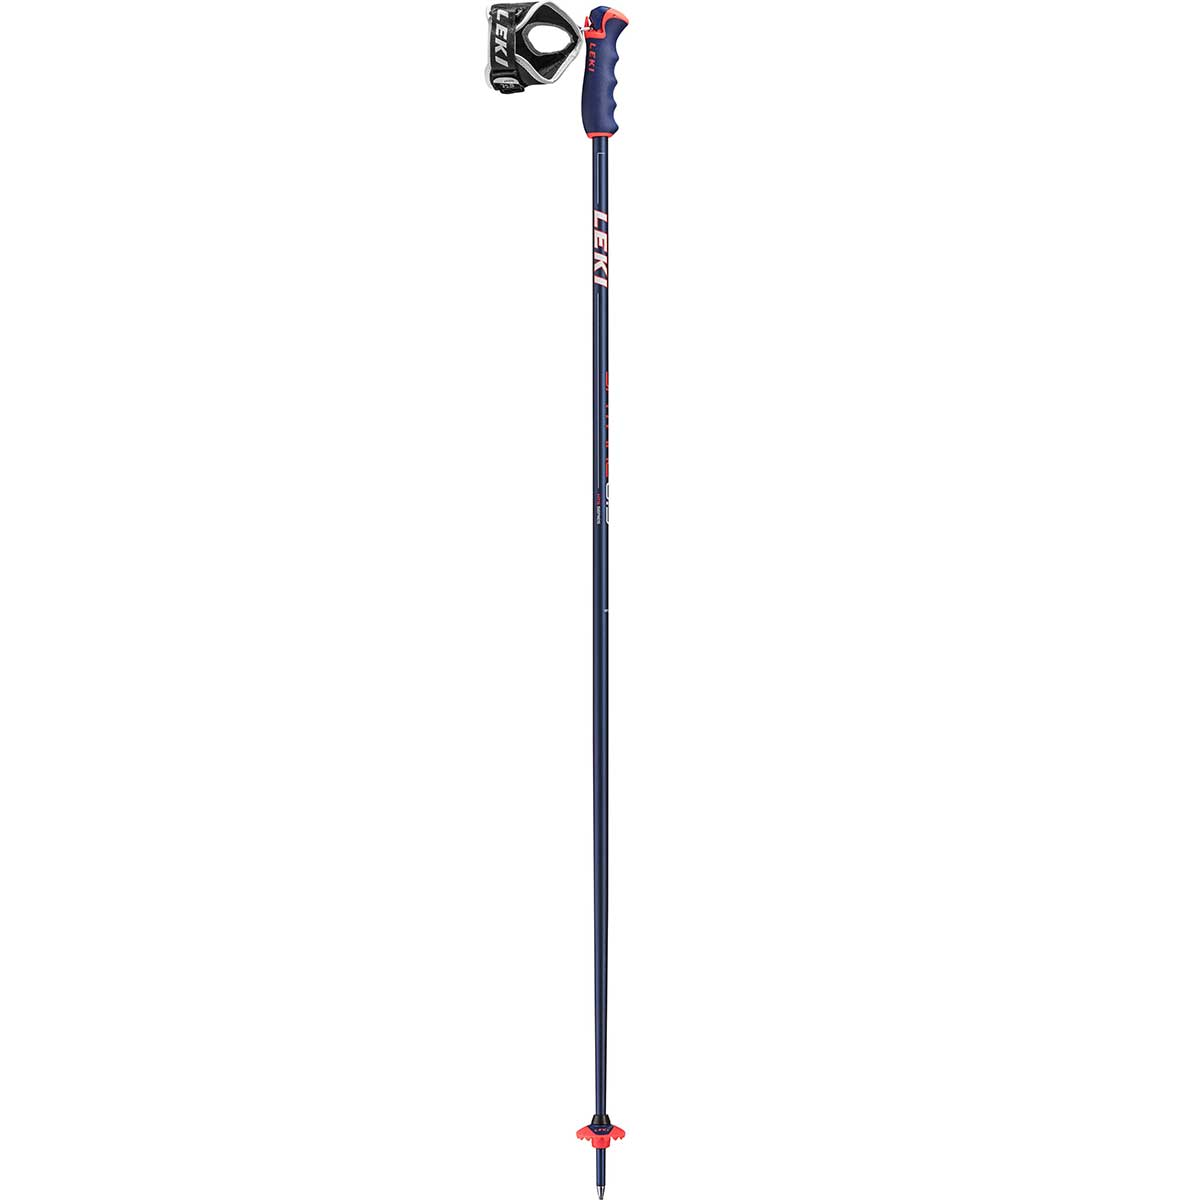 Leki Spitfire S ski pole in blue